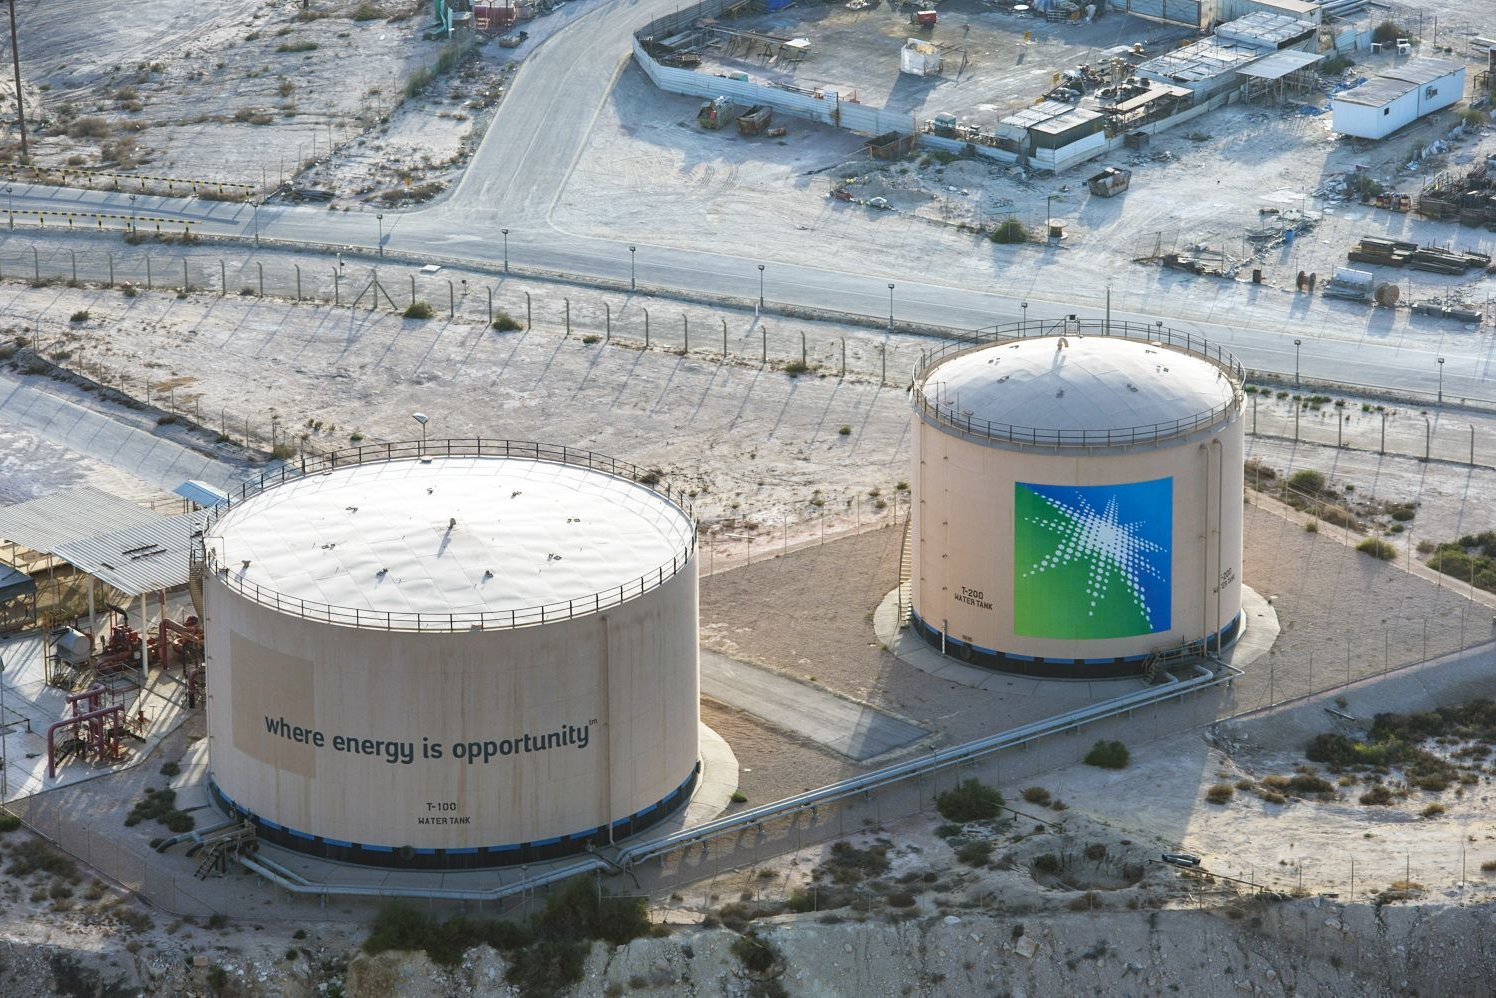 Saudi Aramco has stopped investing in a petrochemical complex in China